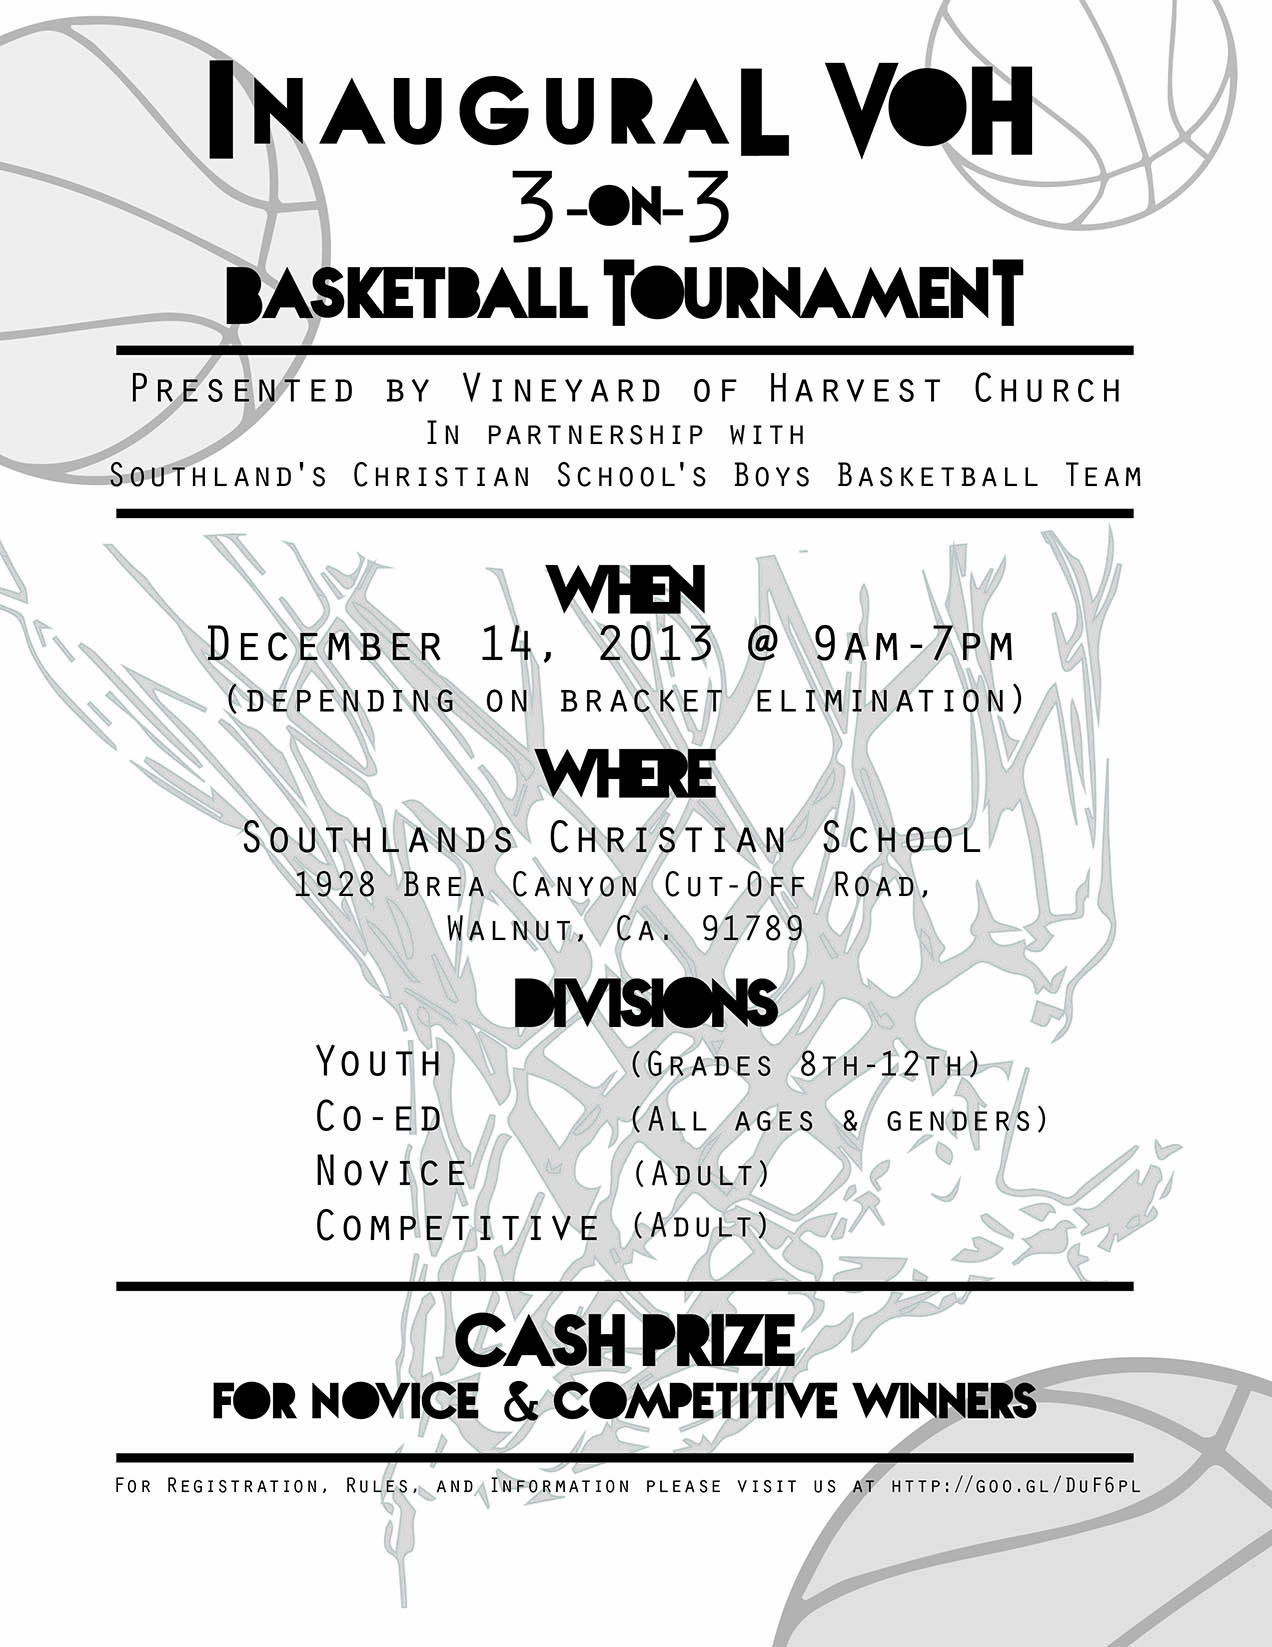 100 3 on 3 basketball tournament flyer template basketball 3 on 3 basketball tournament flyer template 3 on 3 basketball tournament registration form template 100 pronofoot35fo Gallery